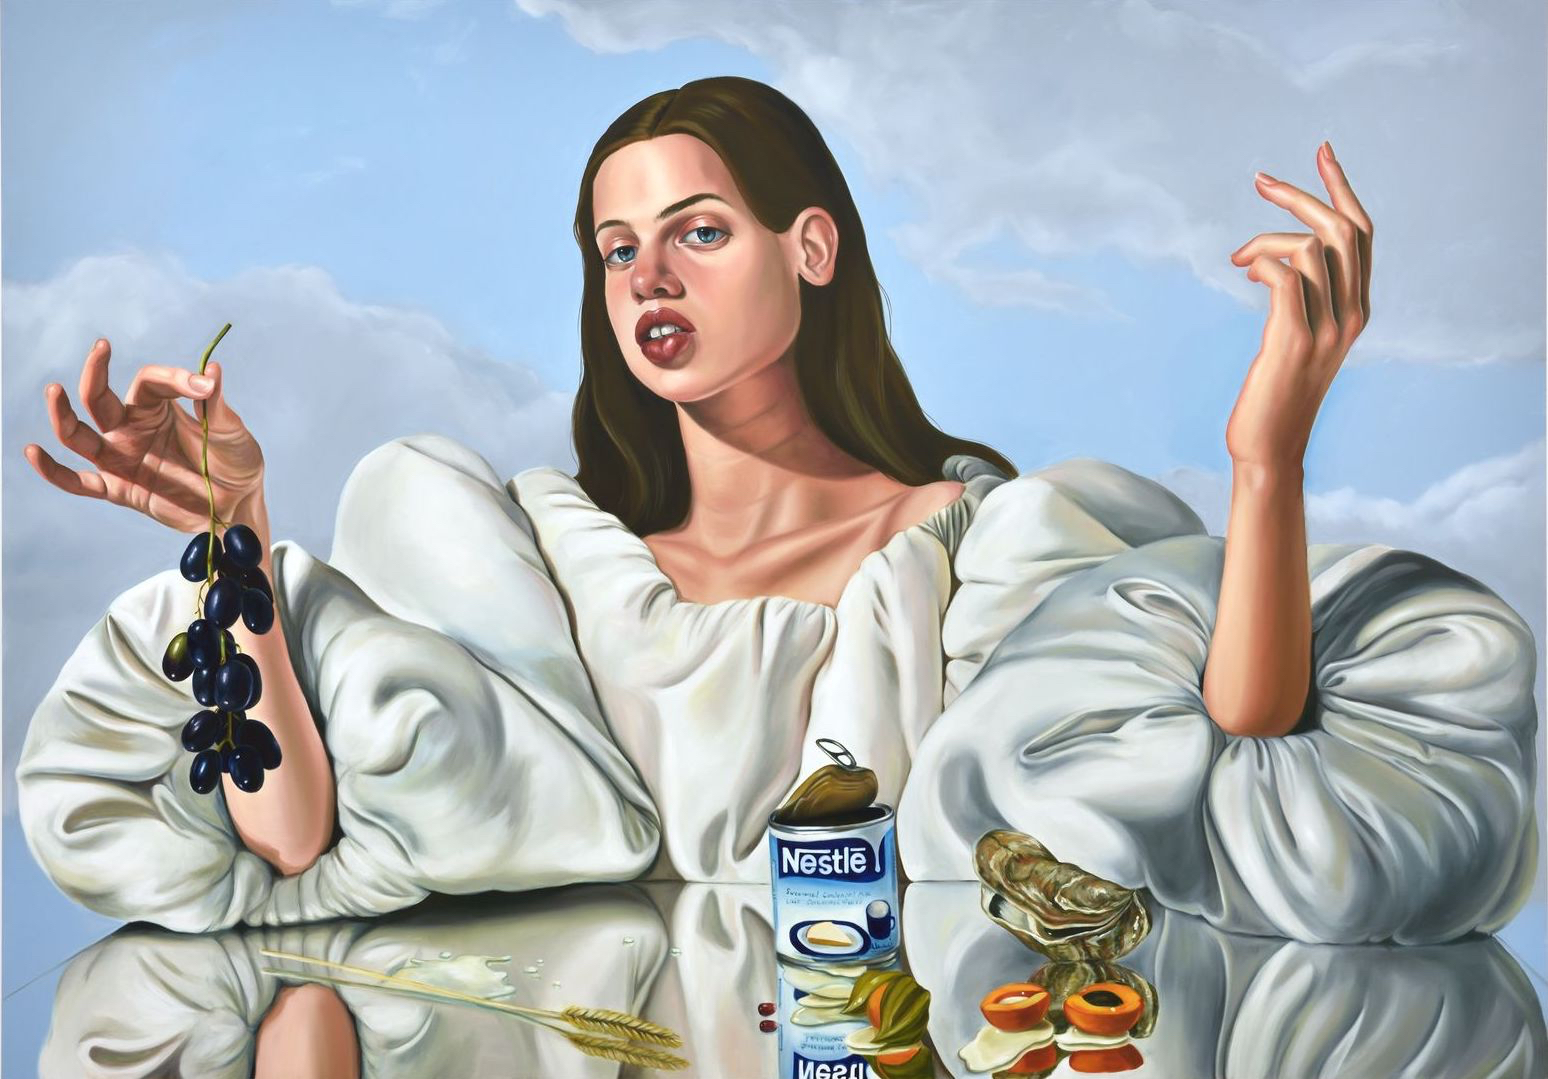 Lactose_Tolerance_2017_oil_on_canvas_210x300cm1